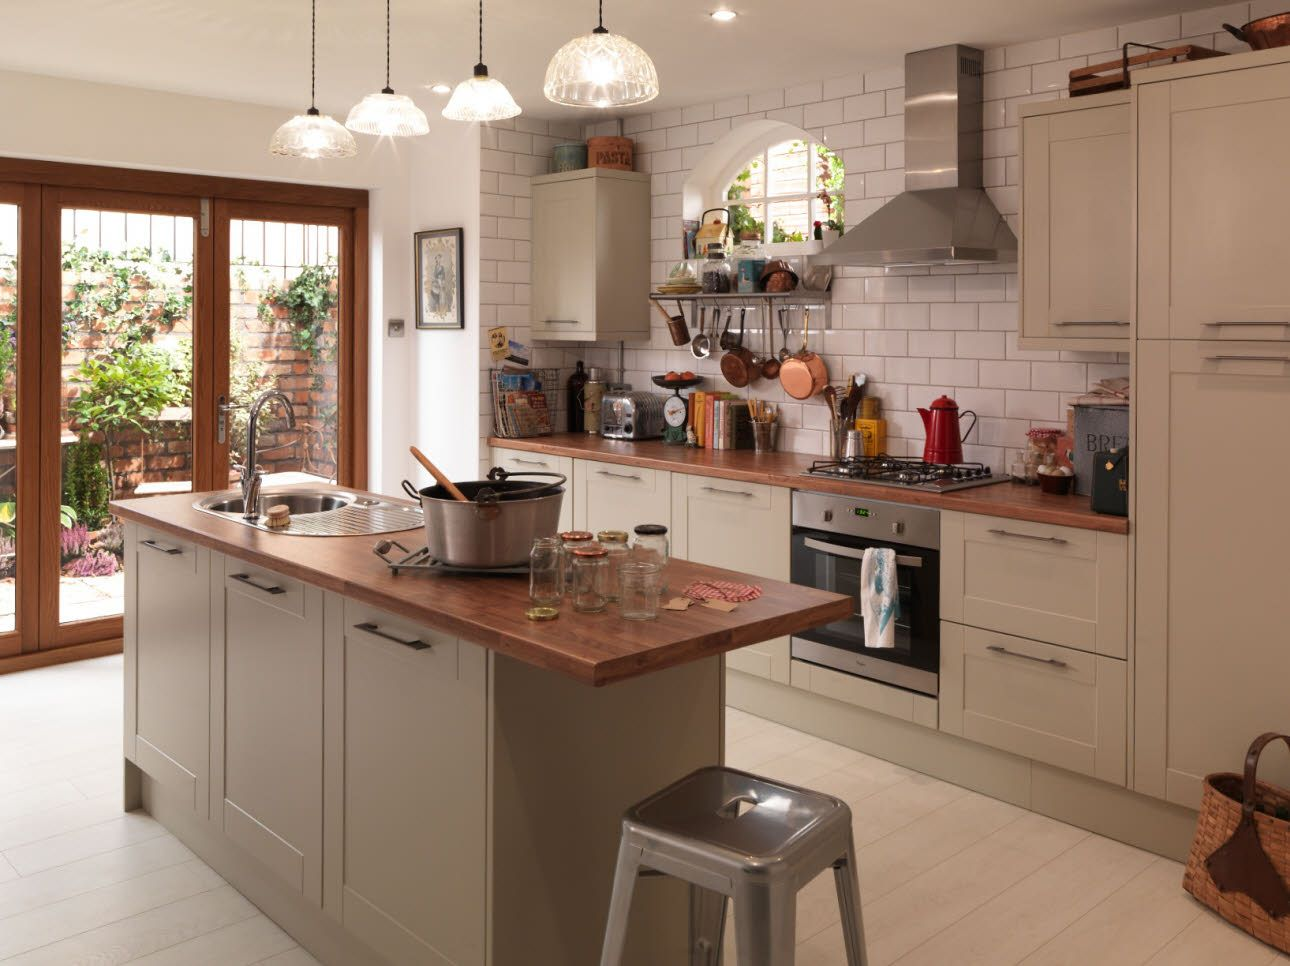 Copper pans and accessories brighten up a room, as shown with the Grey  Shaker kitchen